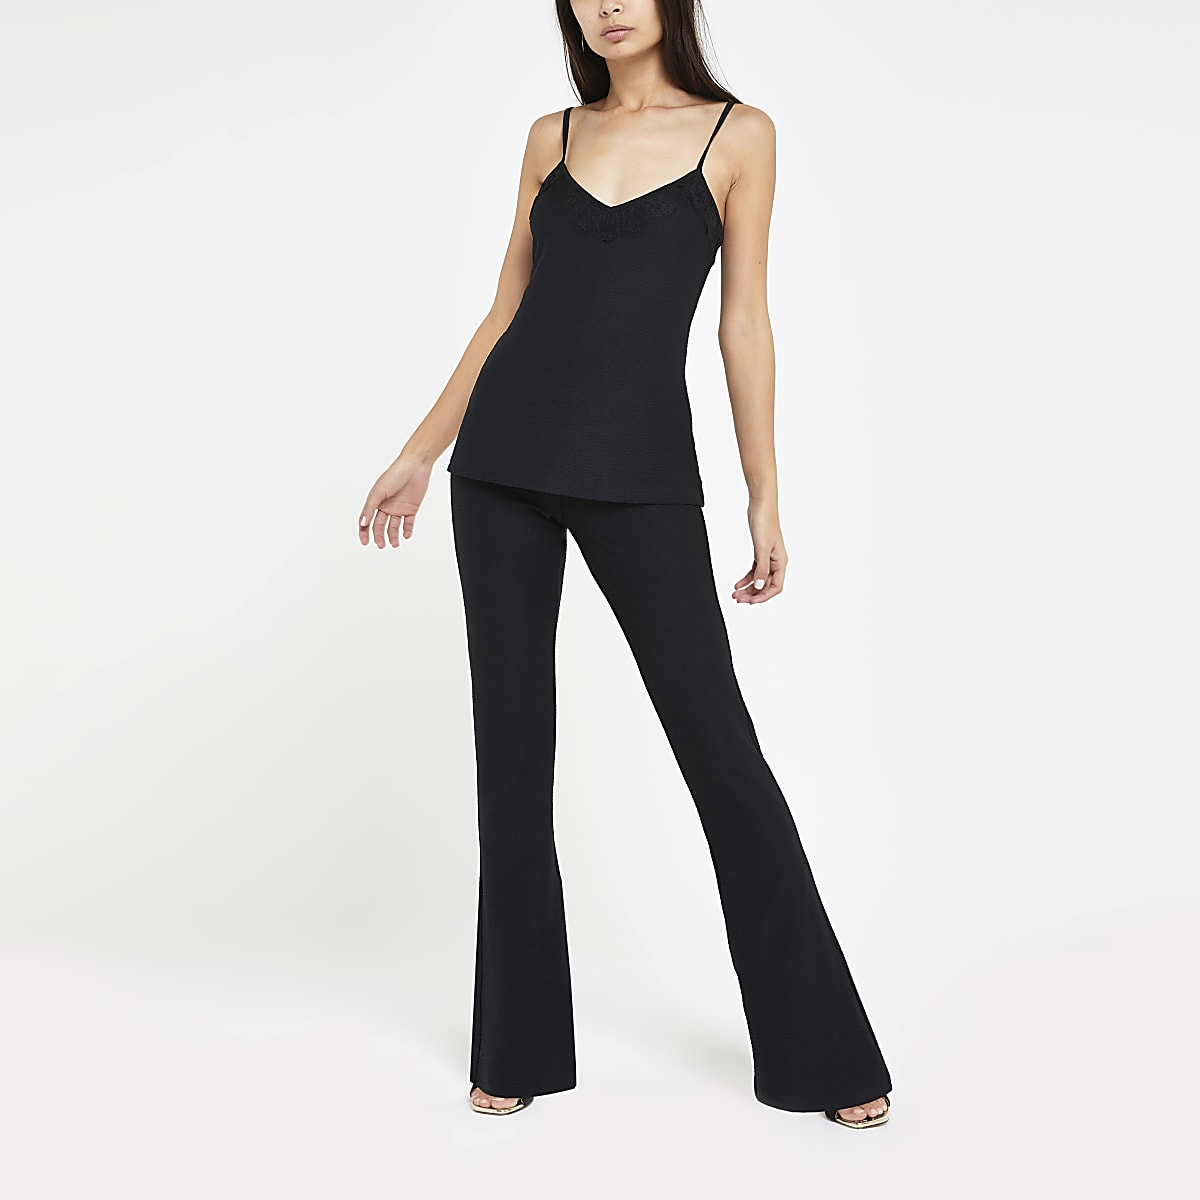 Black high waist jersey flare trousers